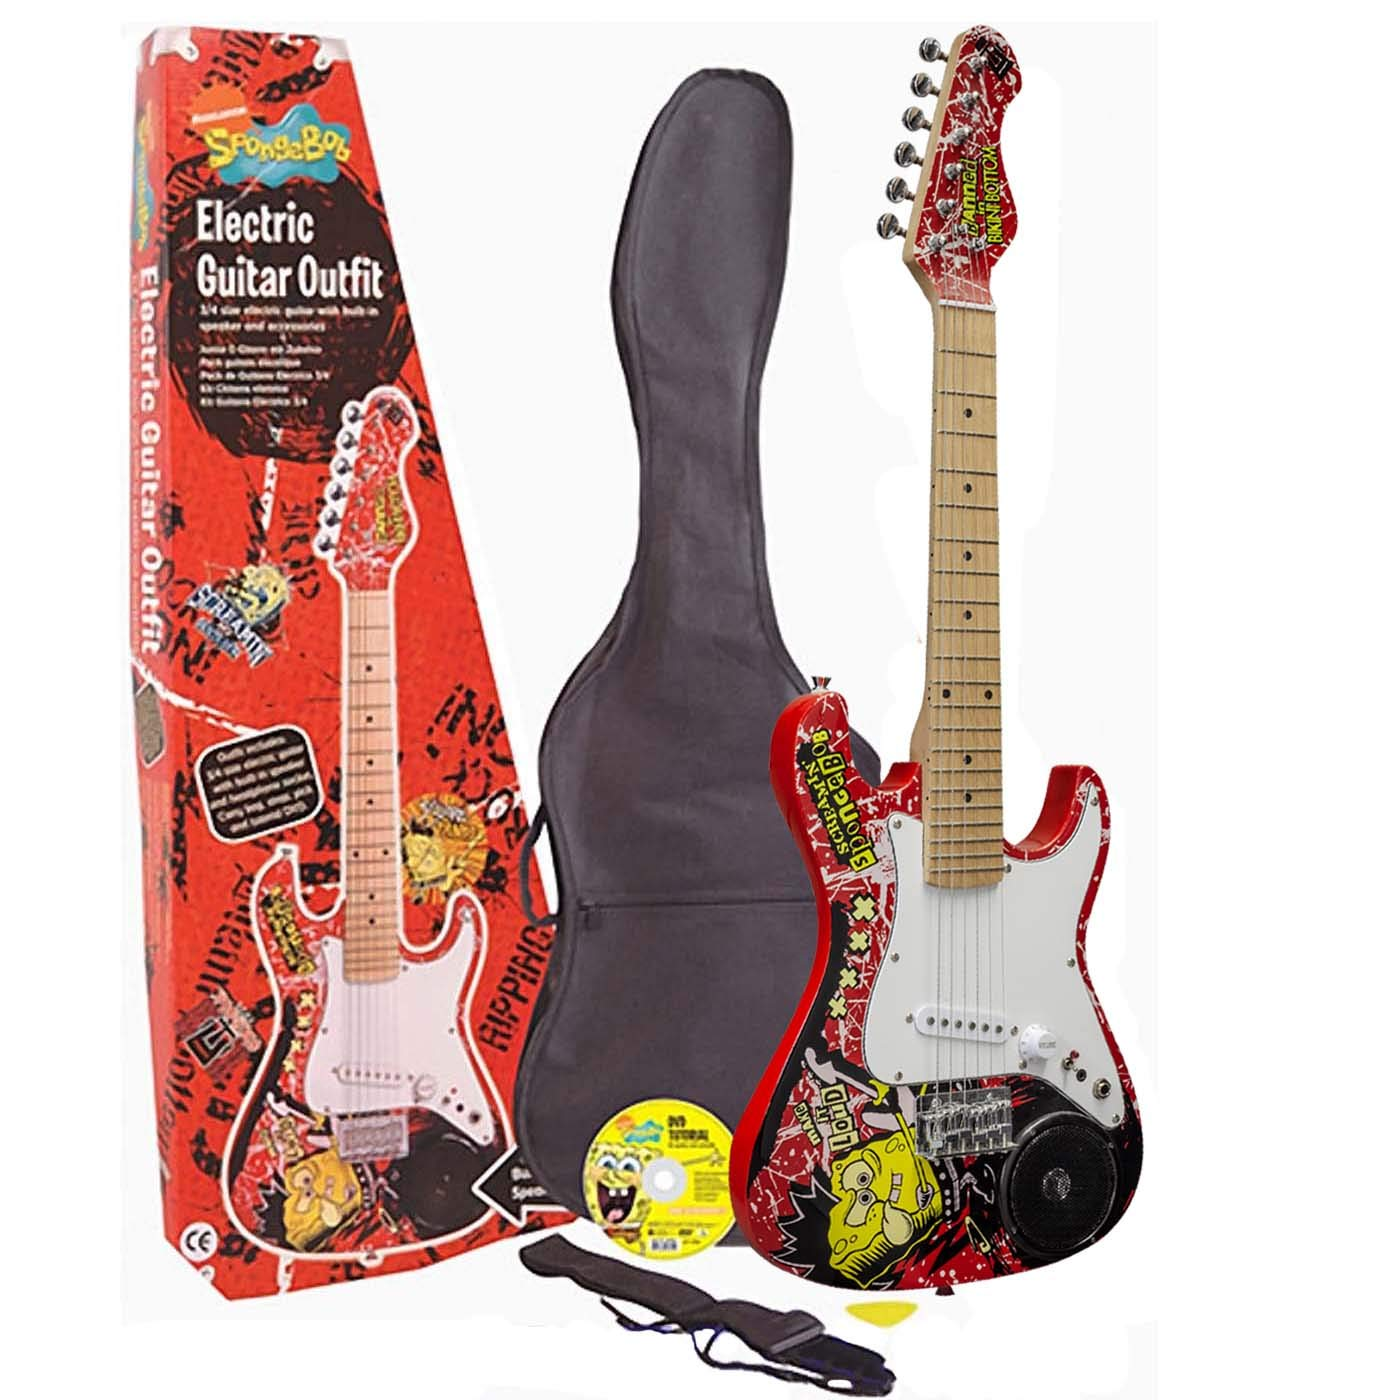 NICKELODEON SPONGEBOB SQUAREPANTS / 3/4 ELECTRIC GUITAR KIT WITH BUILT-IN SPEAKER: Amazon.es: Electrónica